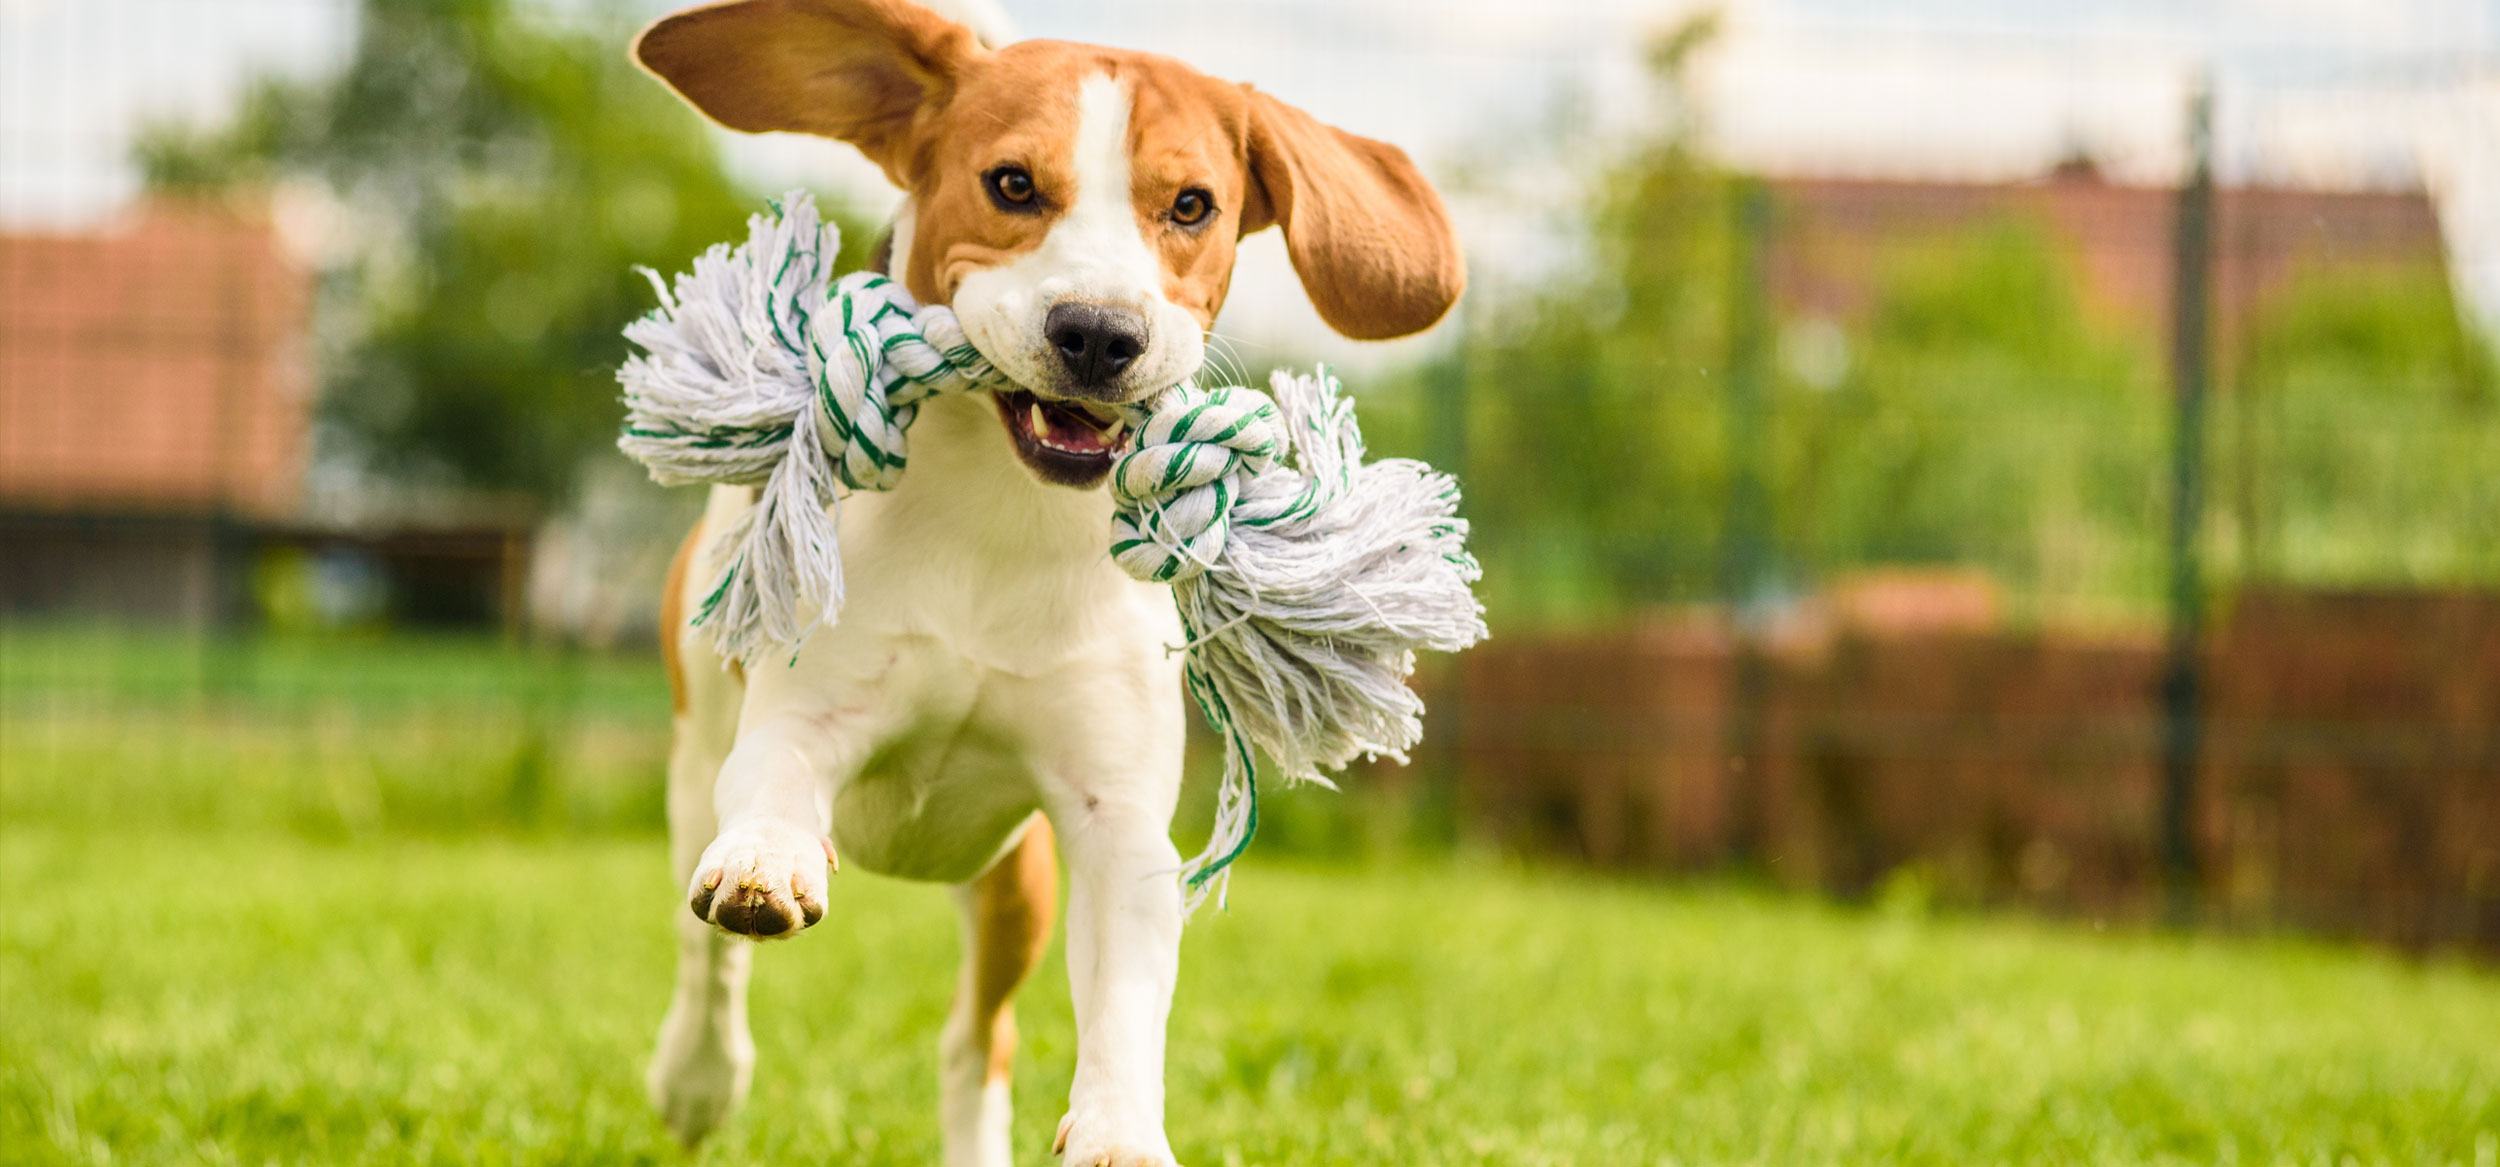 beagle running with chew toy